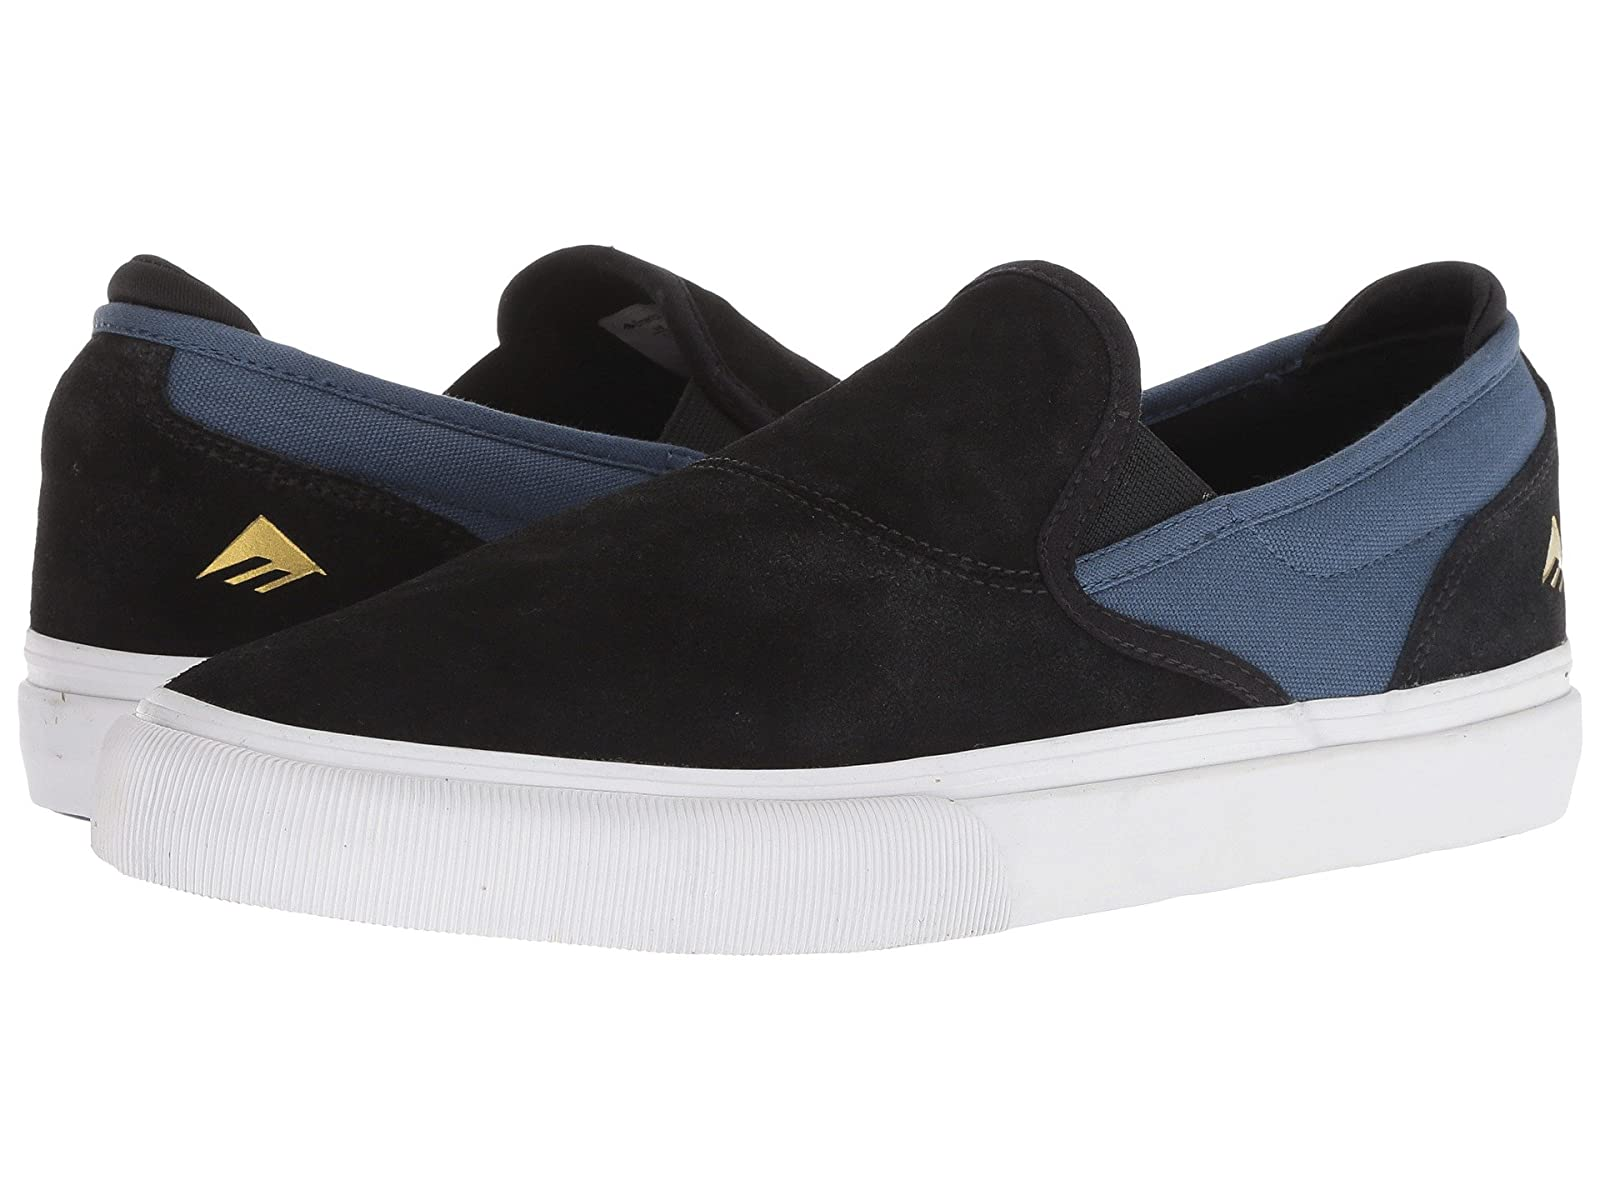 Emerica Wino G6 Slip-OnAtmospheric grades have affordable shoes